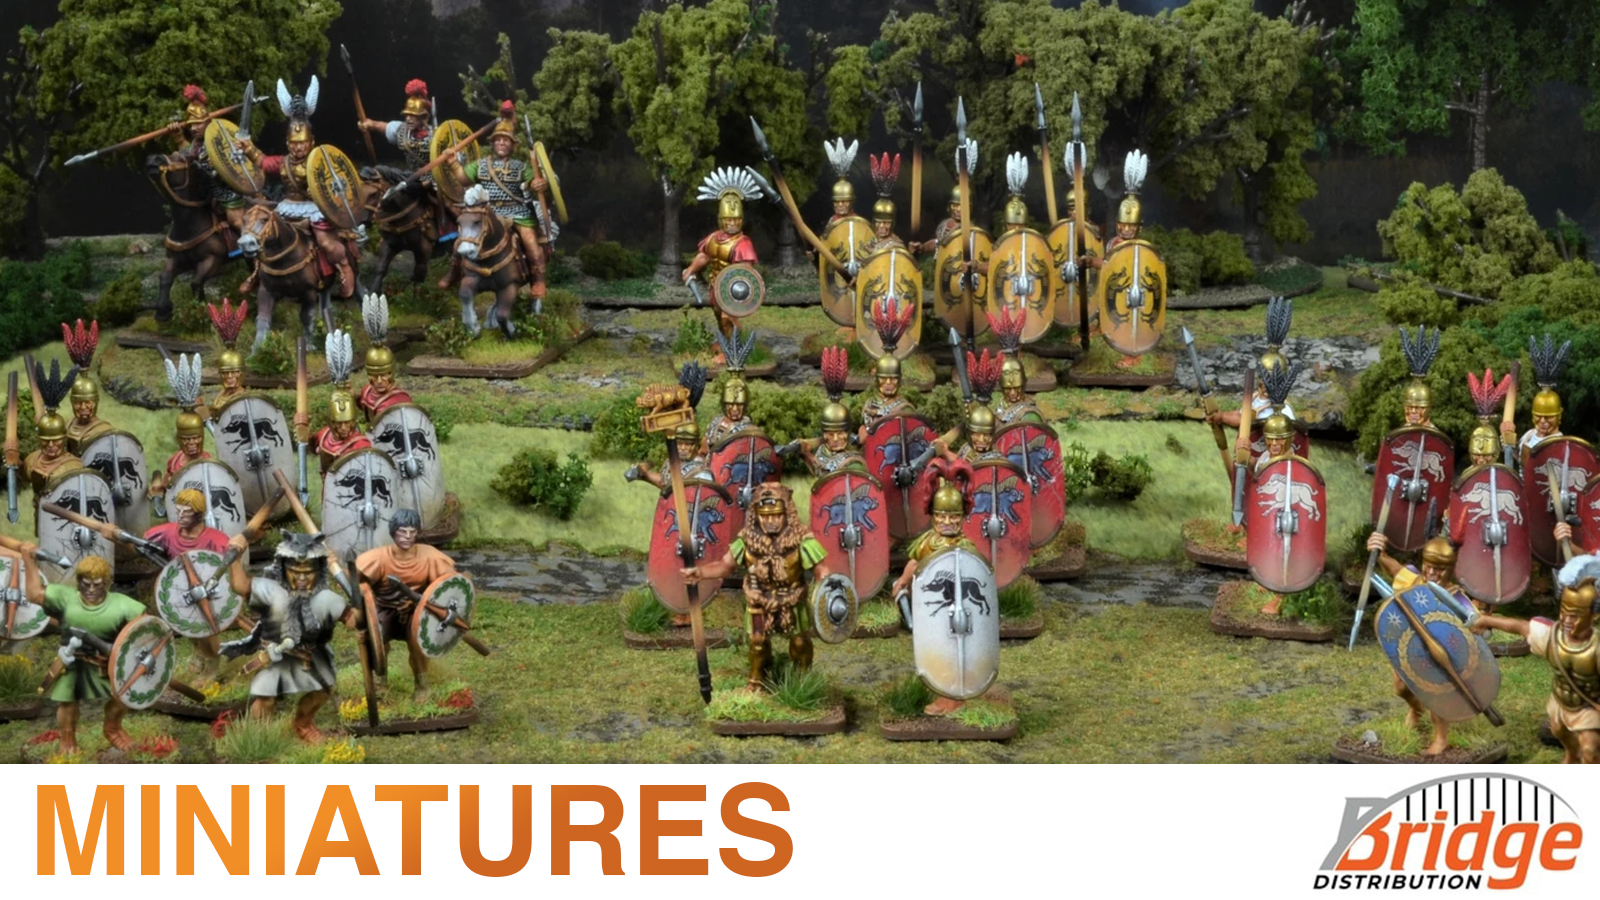 miniatures-header.jpg